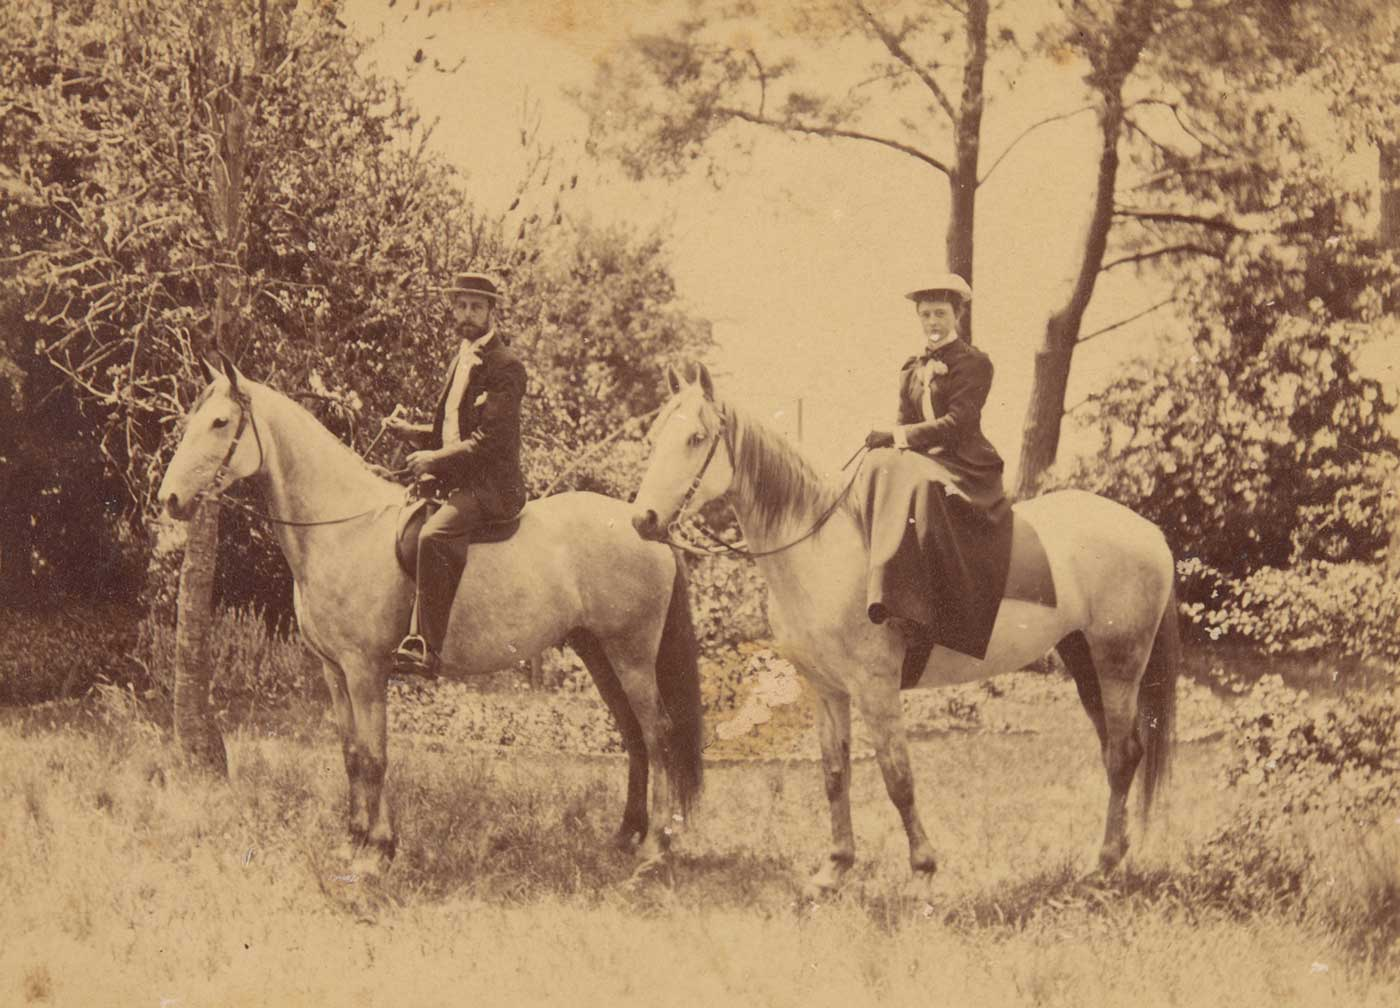 A black and white photograph that depicts William Hugh Anderson and Frances Lilian Faithfull mounted on light-coloured horses.